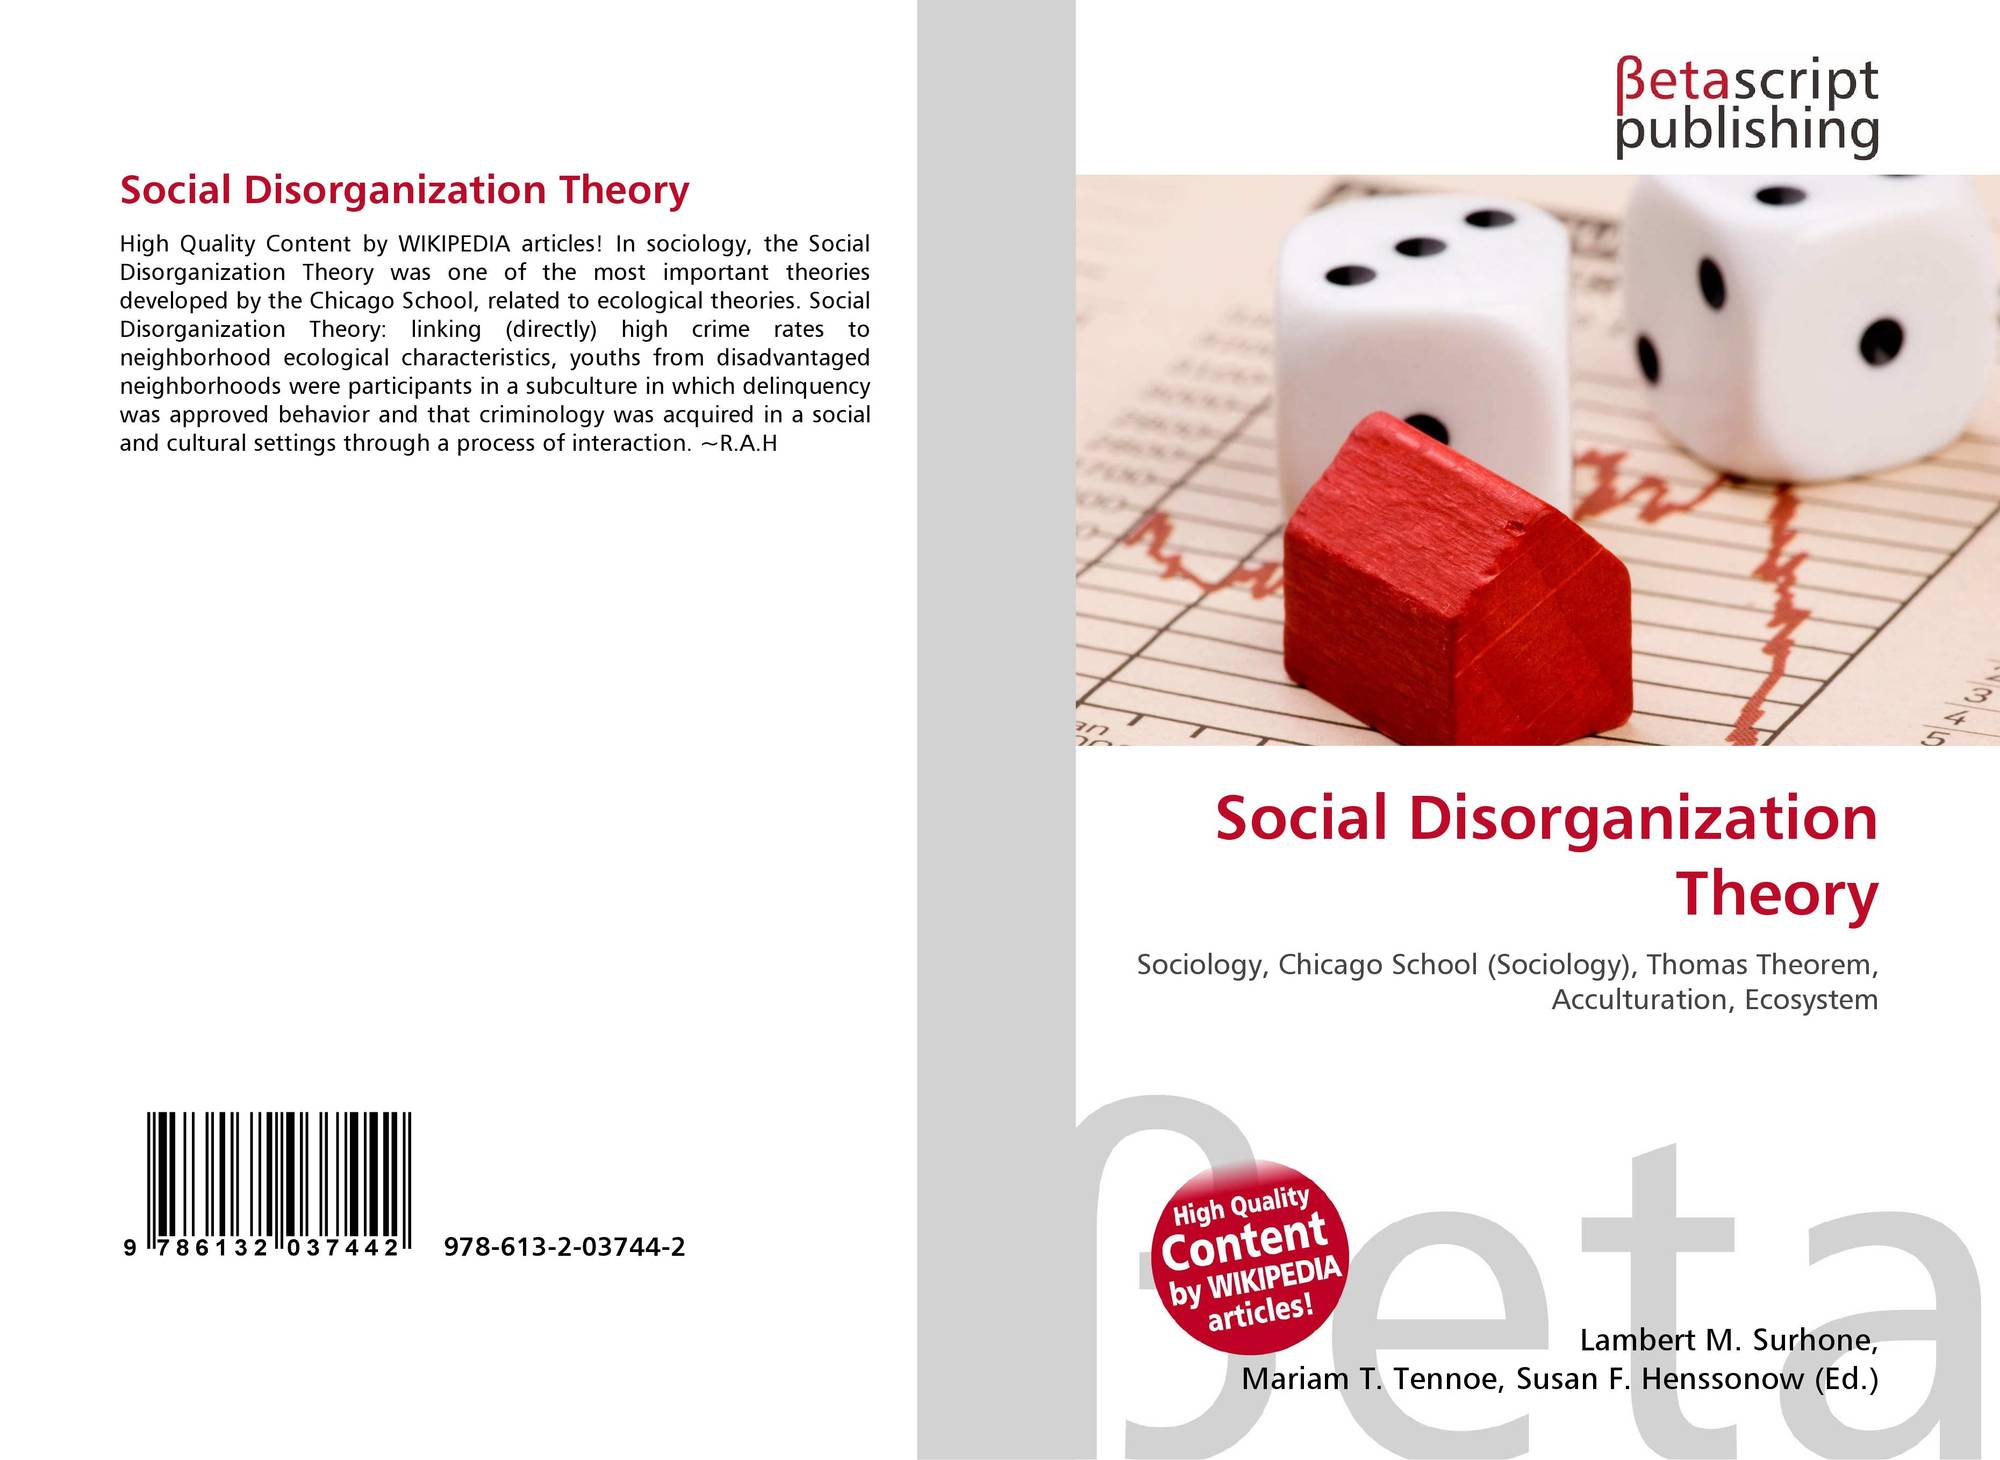 social disorganization theory article related keywords social disorganization theory 978 613 2 03744 6132037446